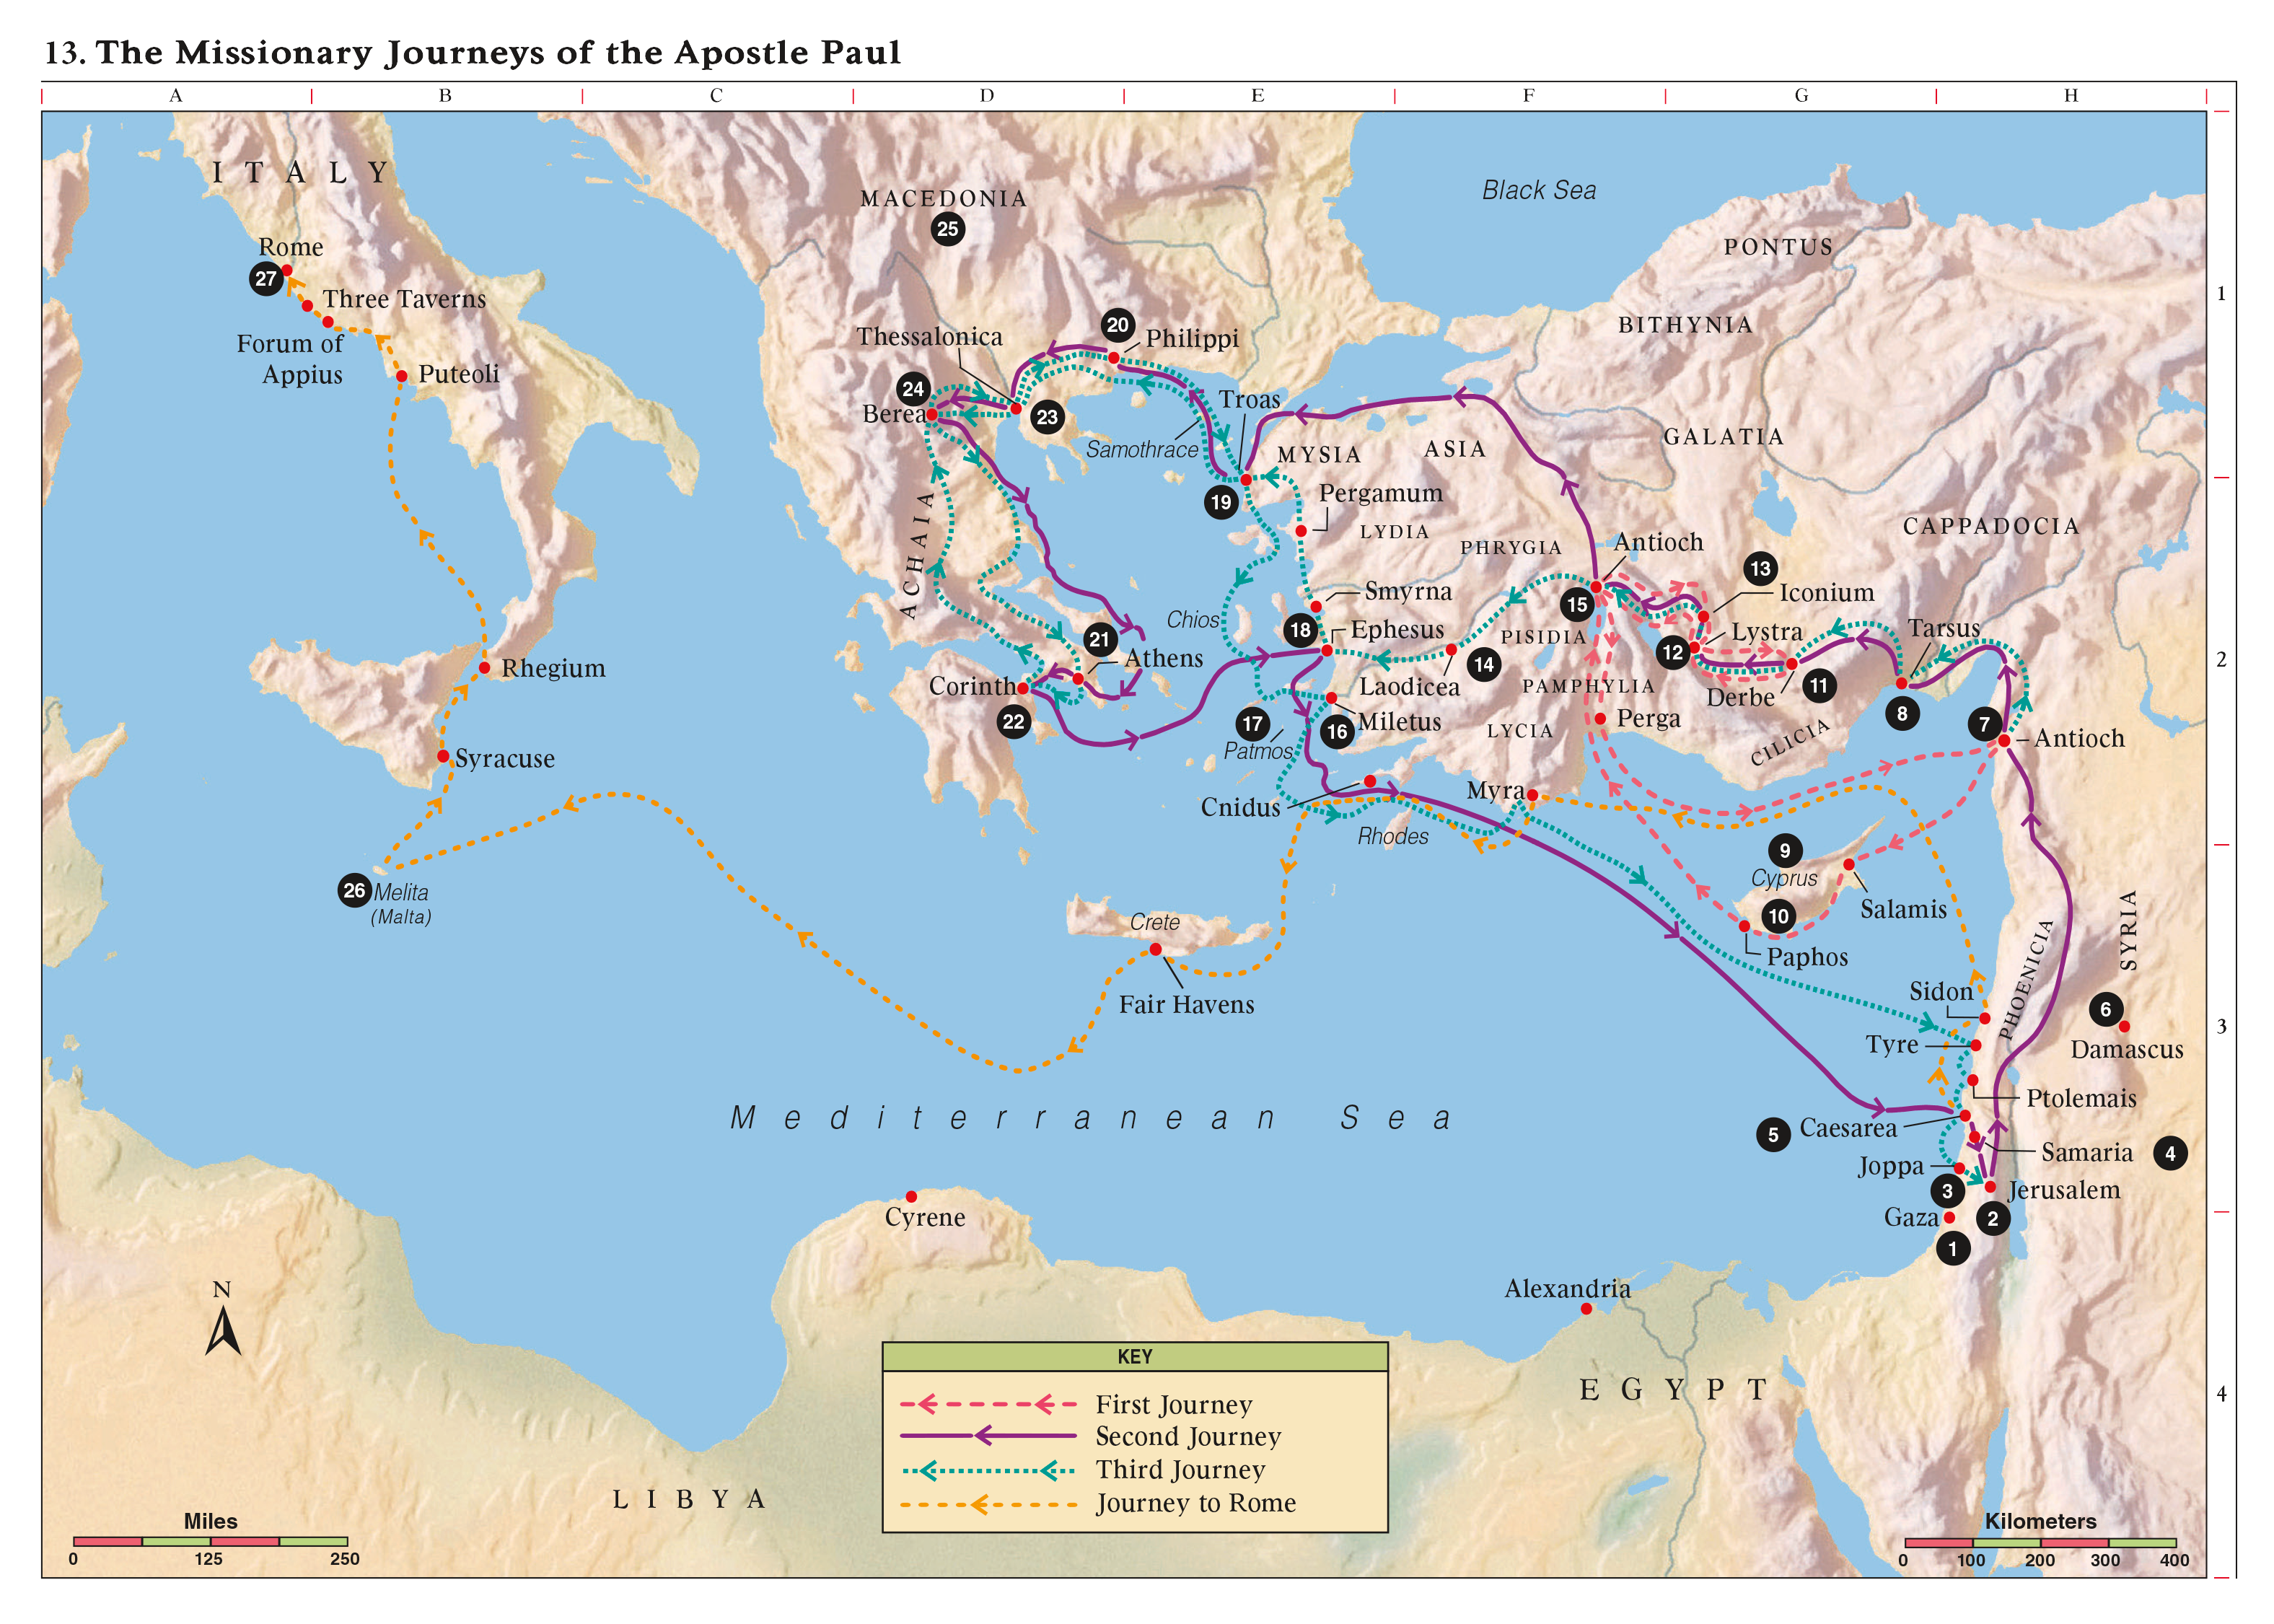 The Missionary Journeys of the Apostle Paul